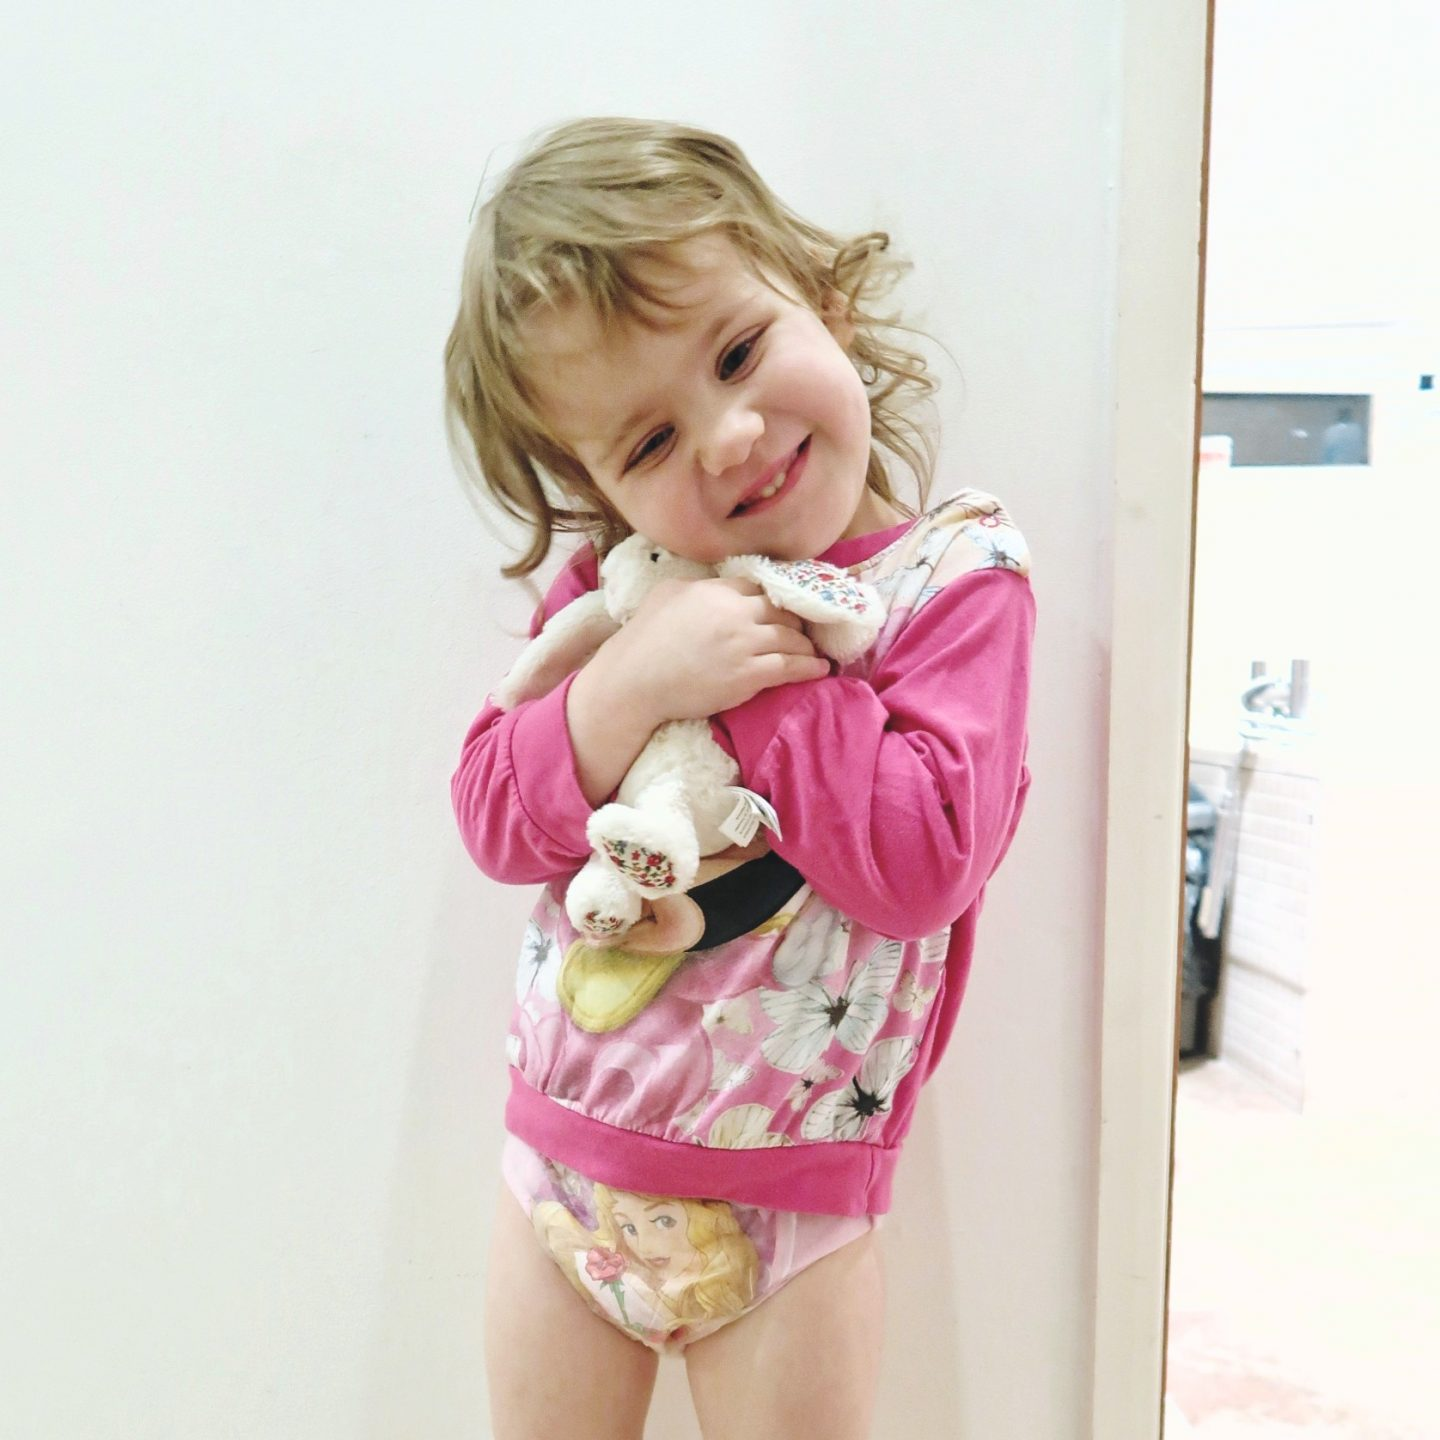 Little girl in pyjamas hugging a stuffed rabbit - tips for night-time potty training